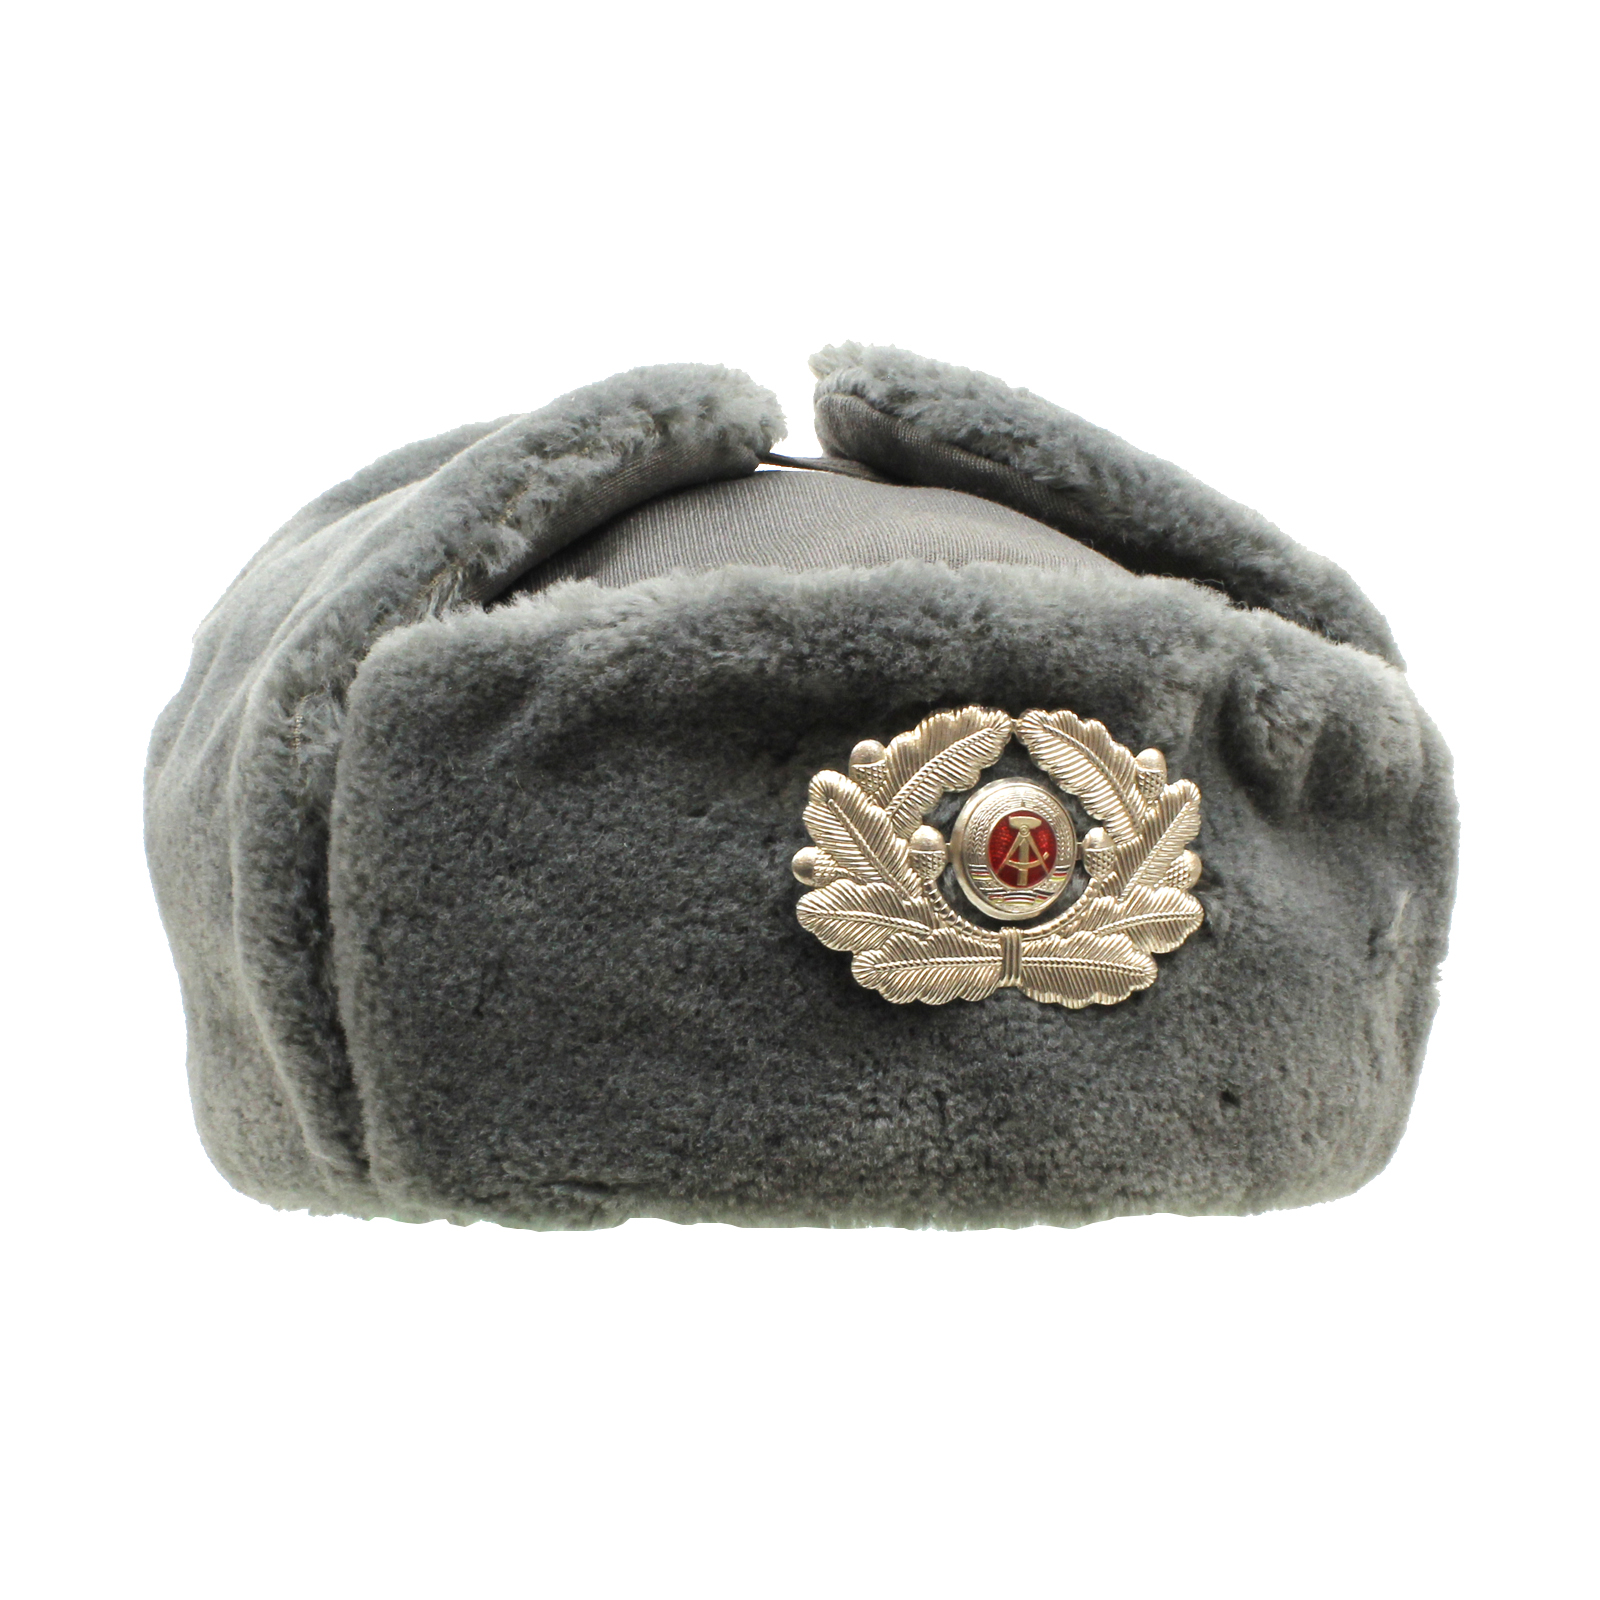 EAST GERMAN FUR HAT OFFICER - MILITARY SURPLUS WINTER   CLOTHING ... 587c4e115c6